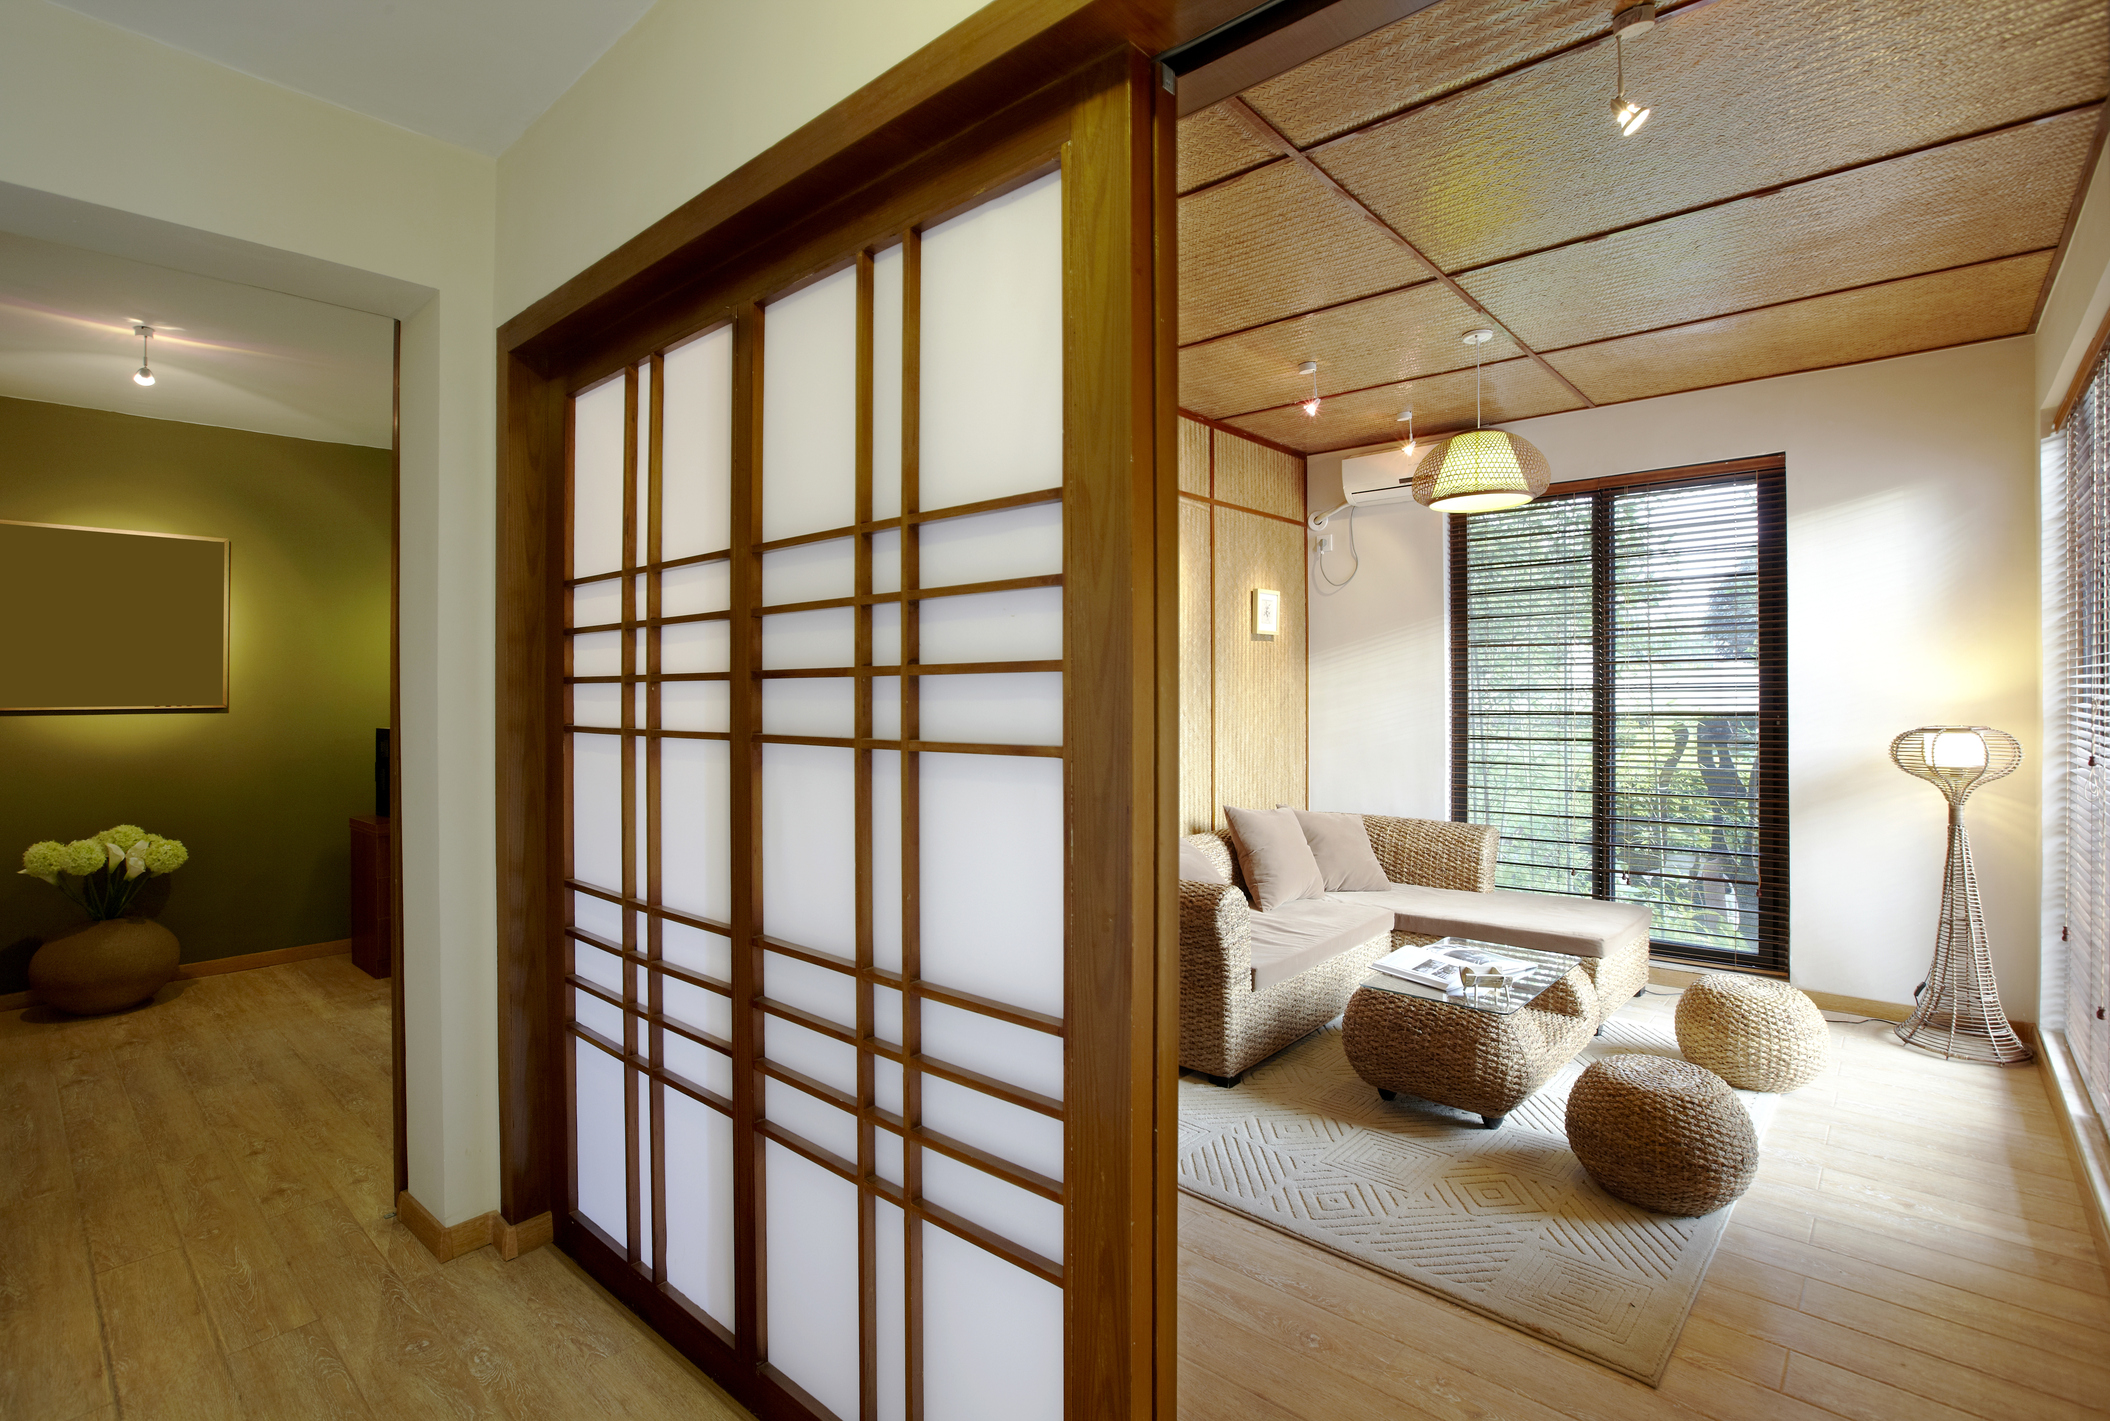 Beauteous 80 japanese style interior design design ideas for Japanese minimalist interior design